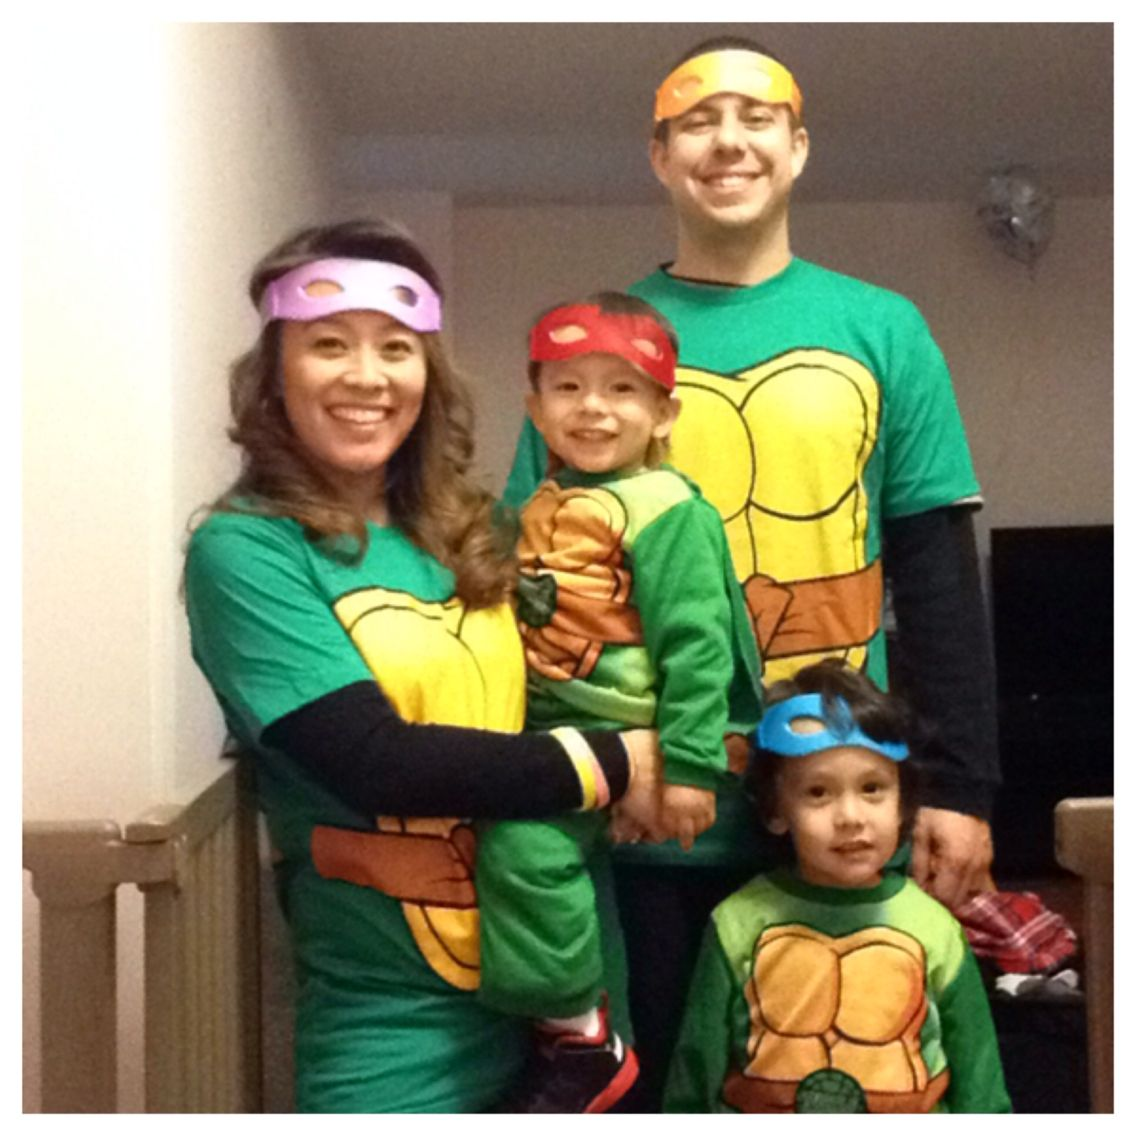 Congratulate, adult ninja turtle costume